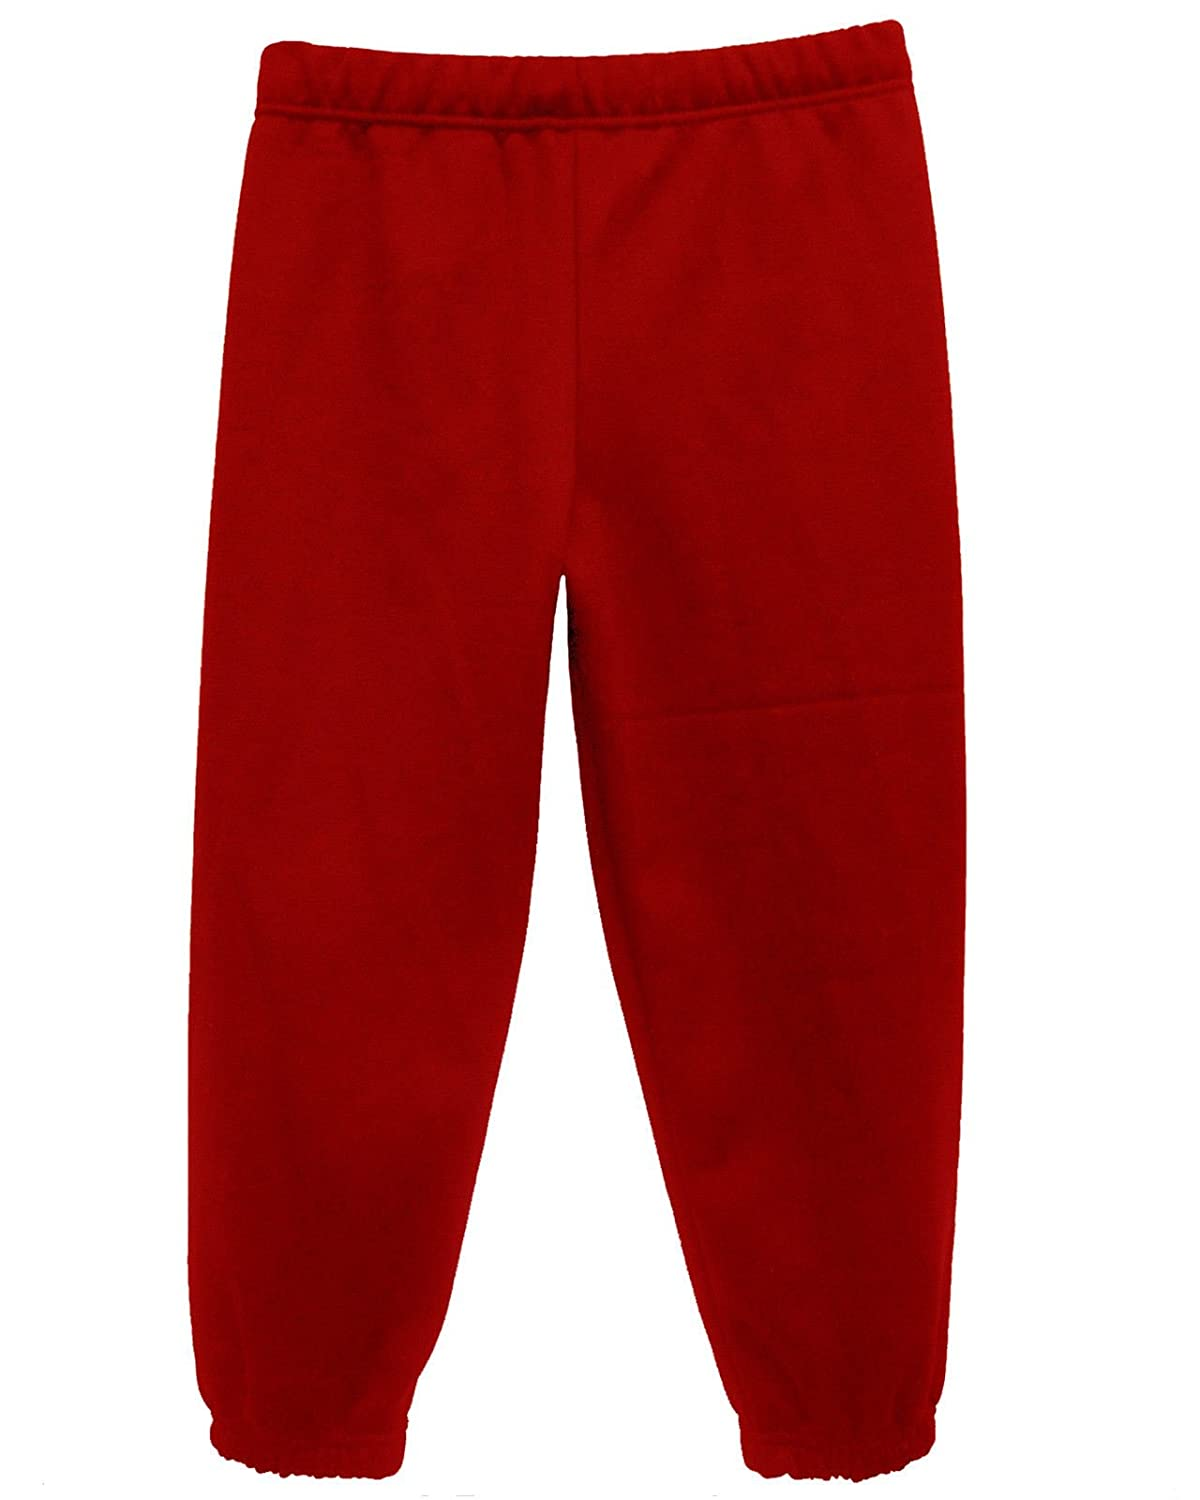 CL Childrens/Kids Unisex Jog Pants / Jogging Bottoms